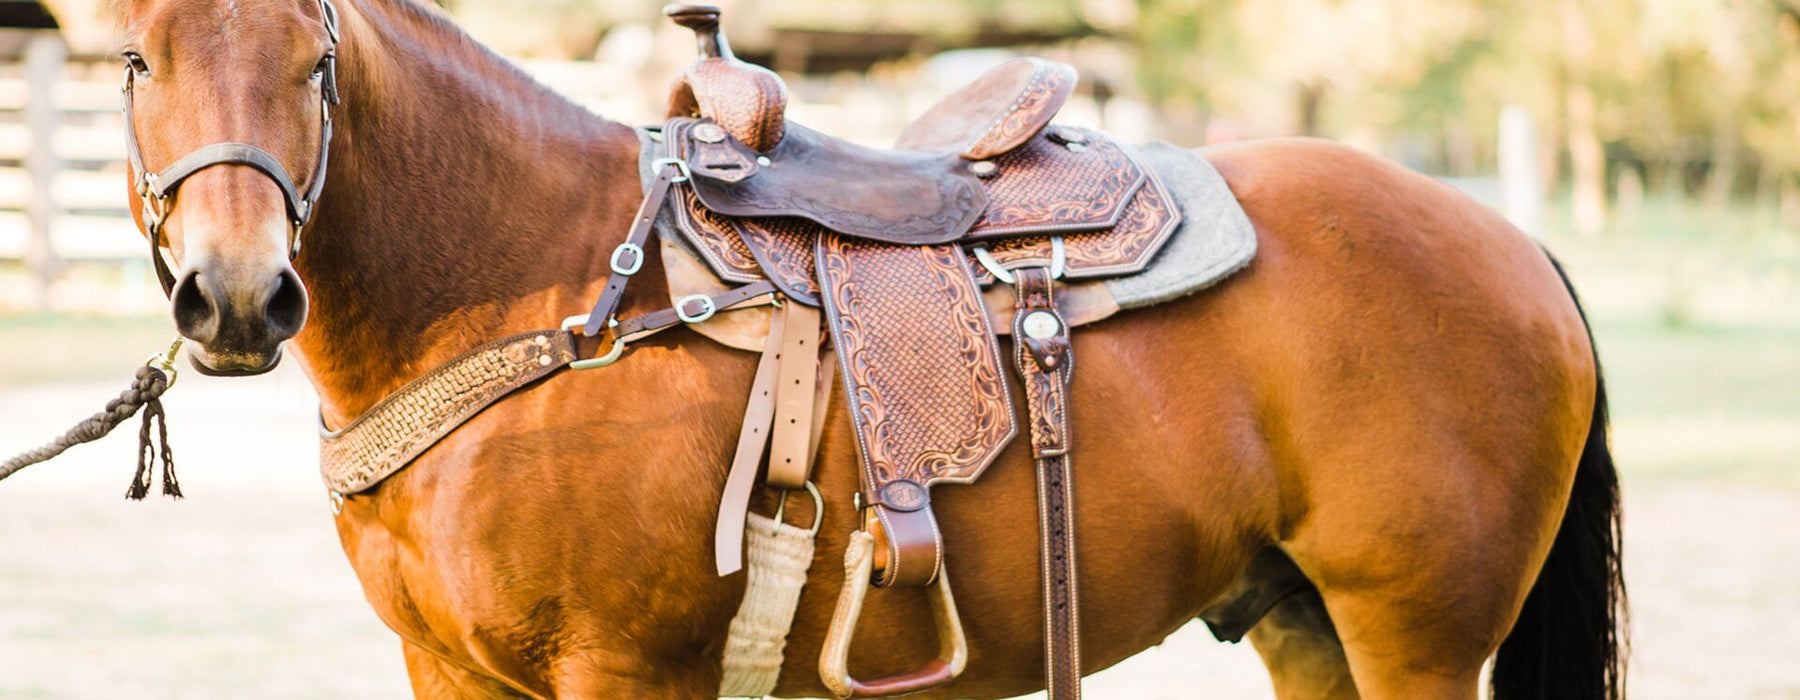 7767b9cd9a83 Double J Saddlery / Custom, Hand-made Leather Products